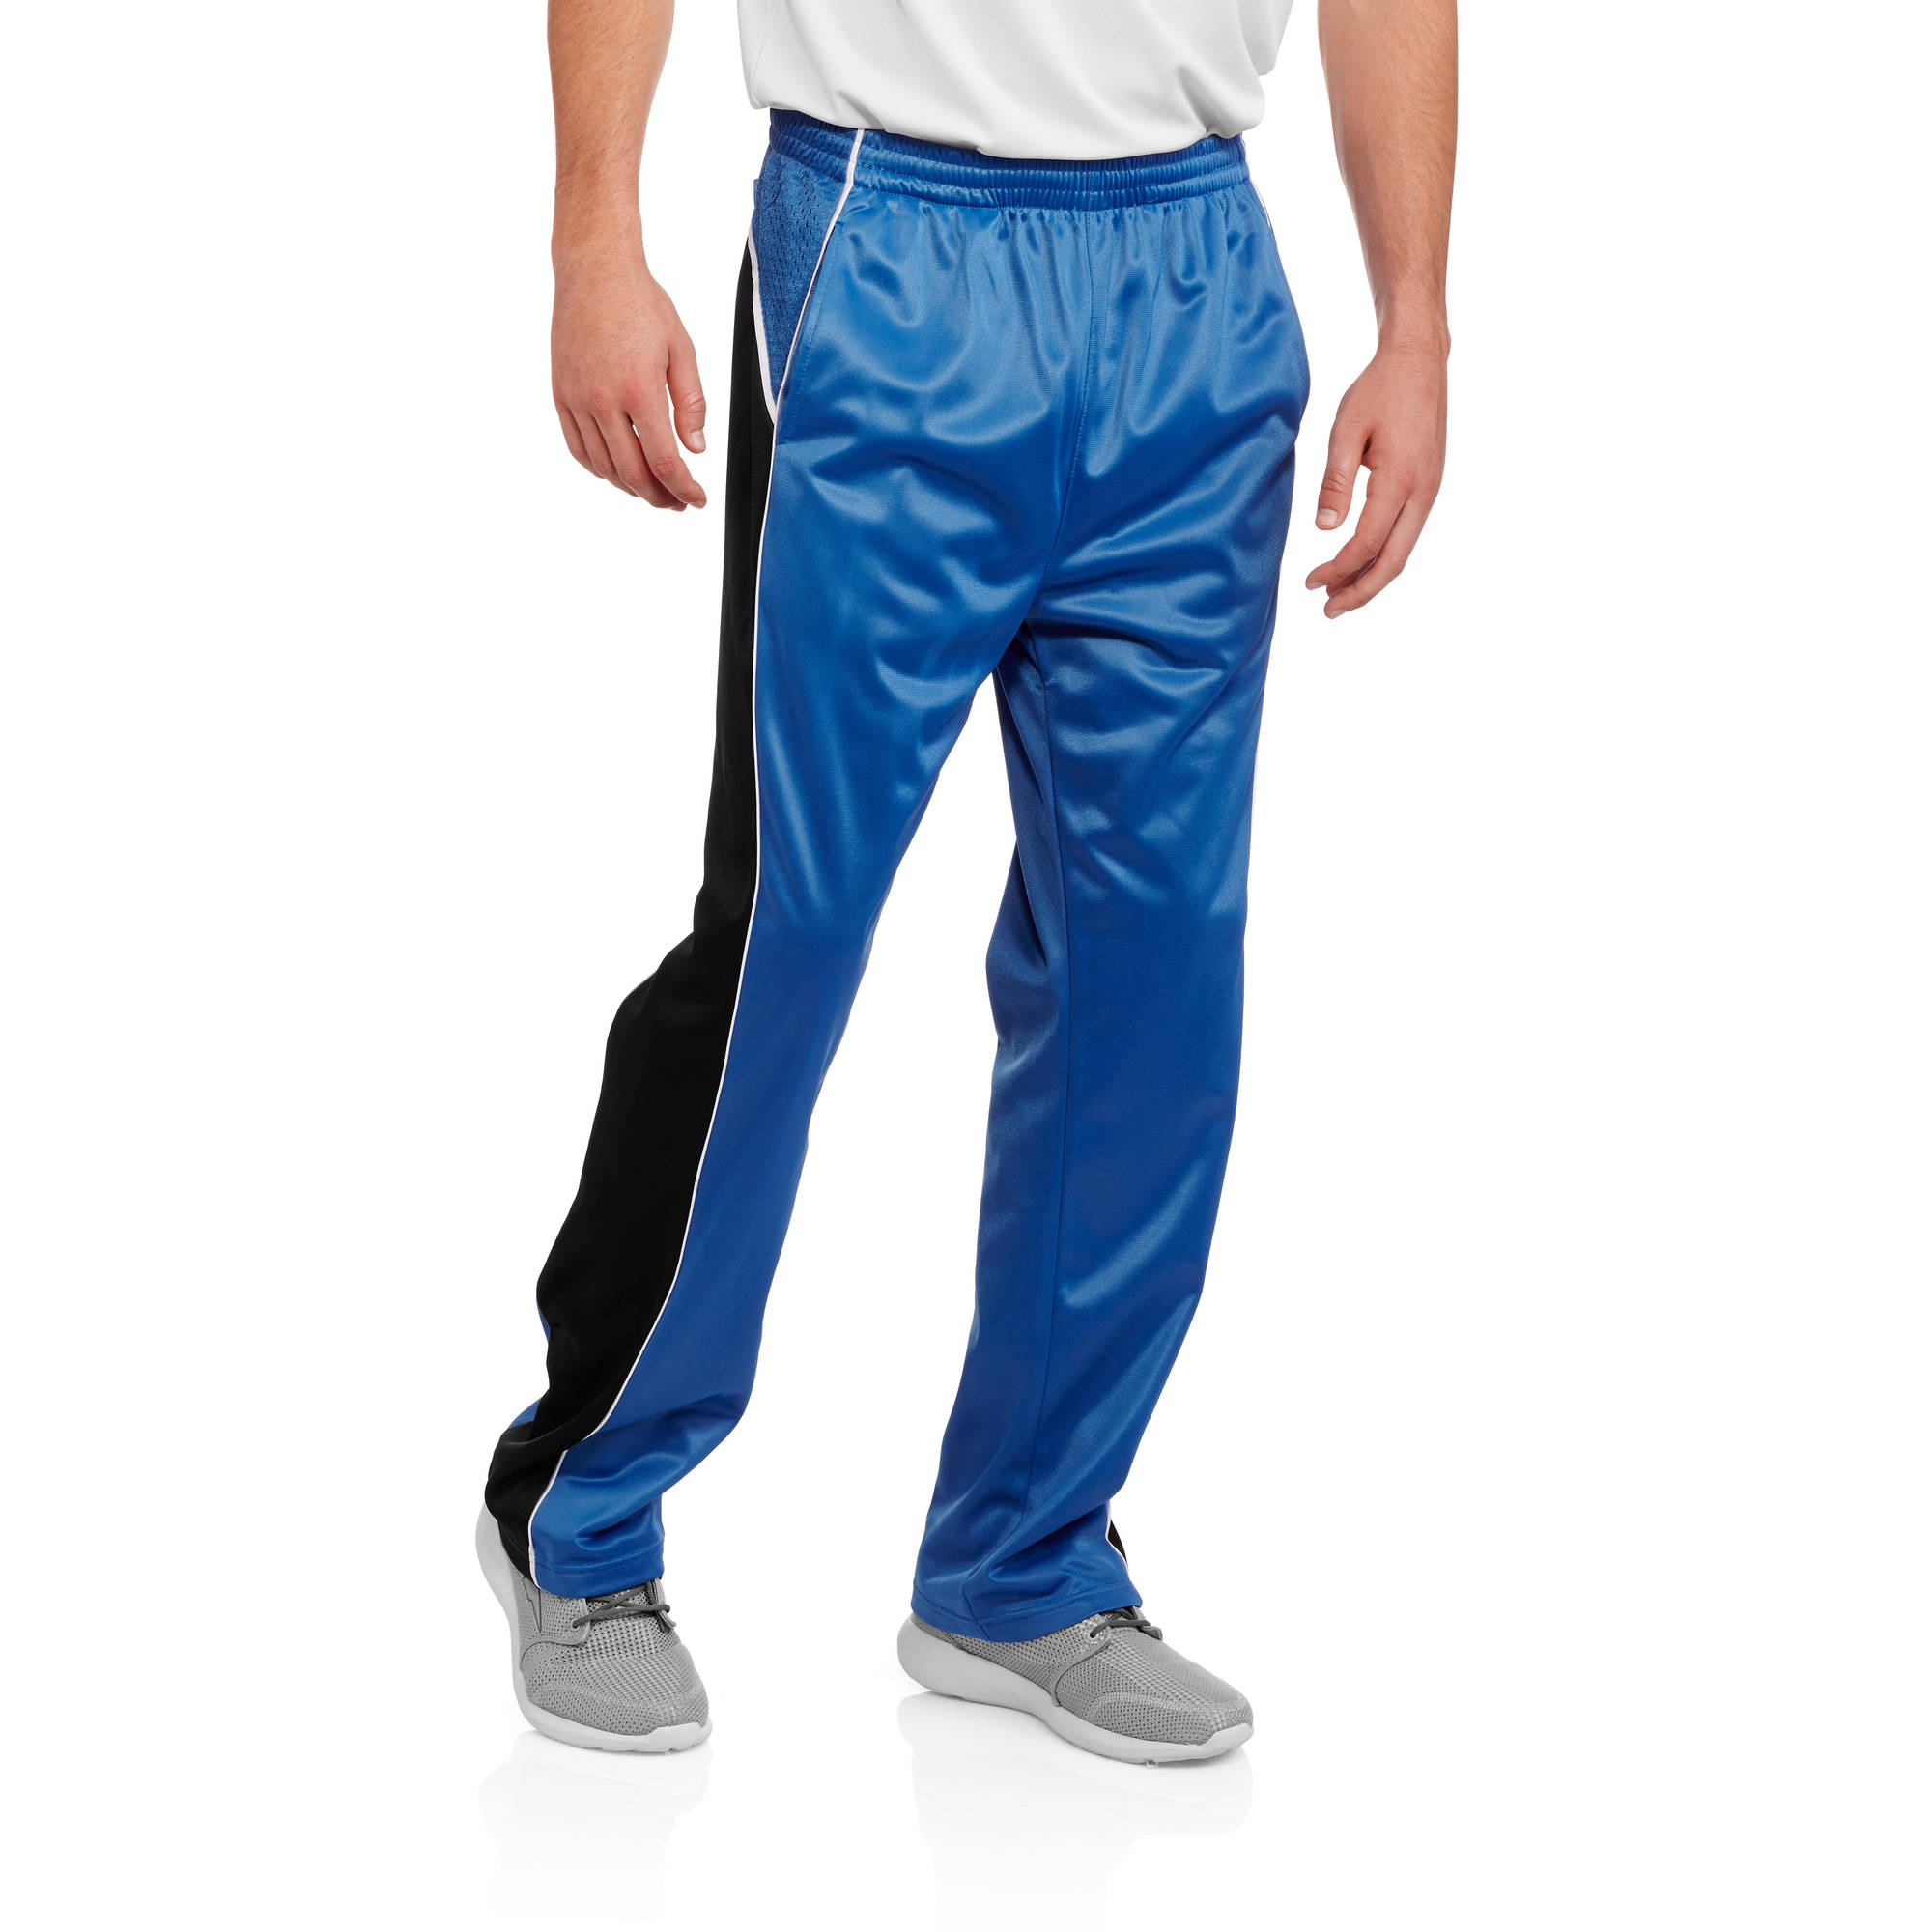 Four Cast Big Men's Tricot Track Pants, 2XL